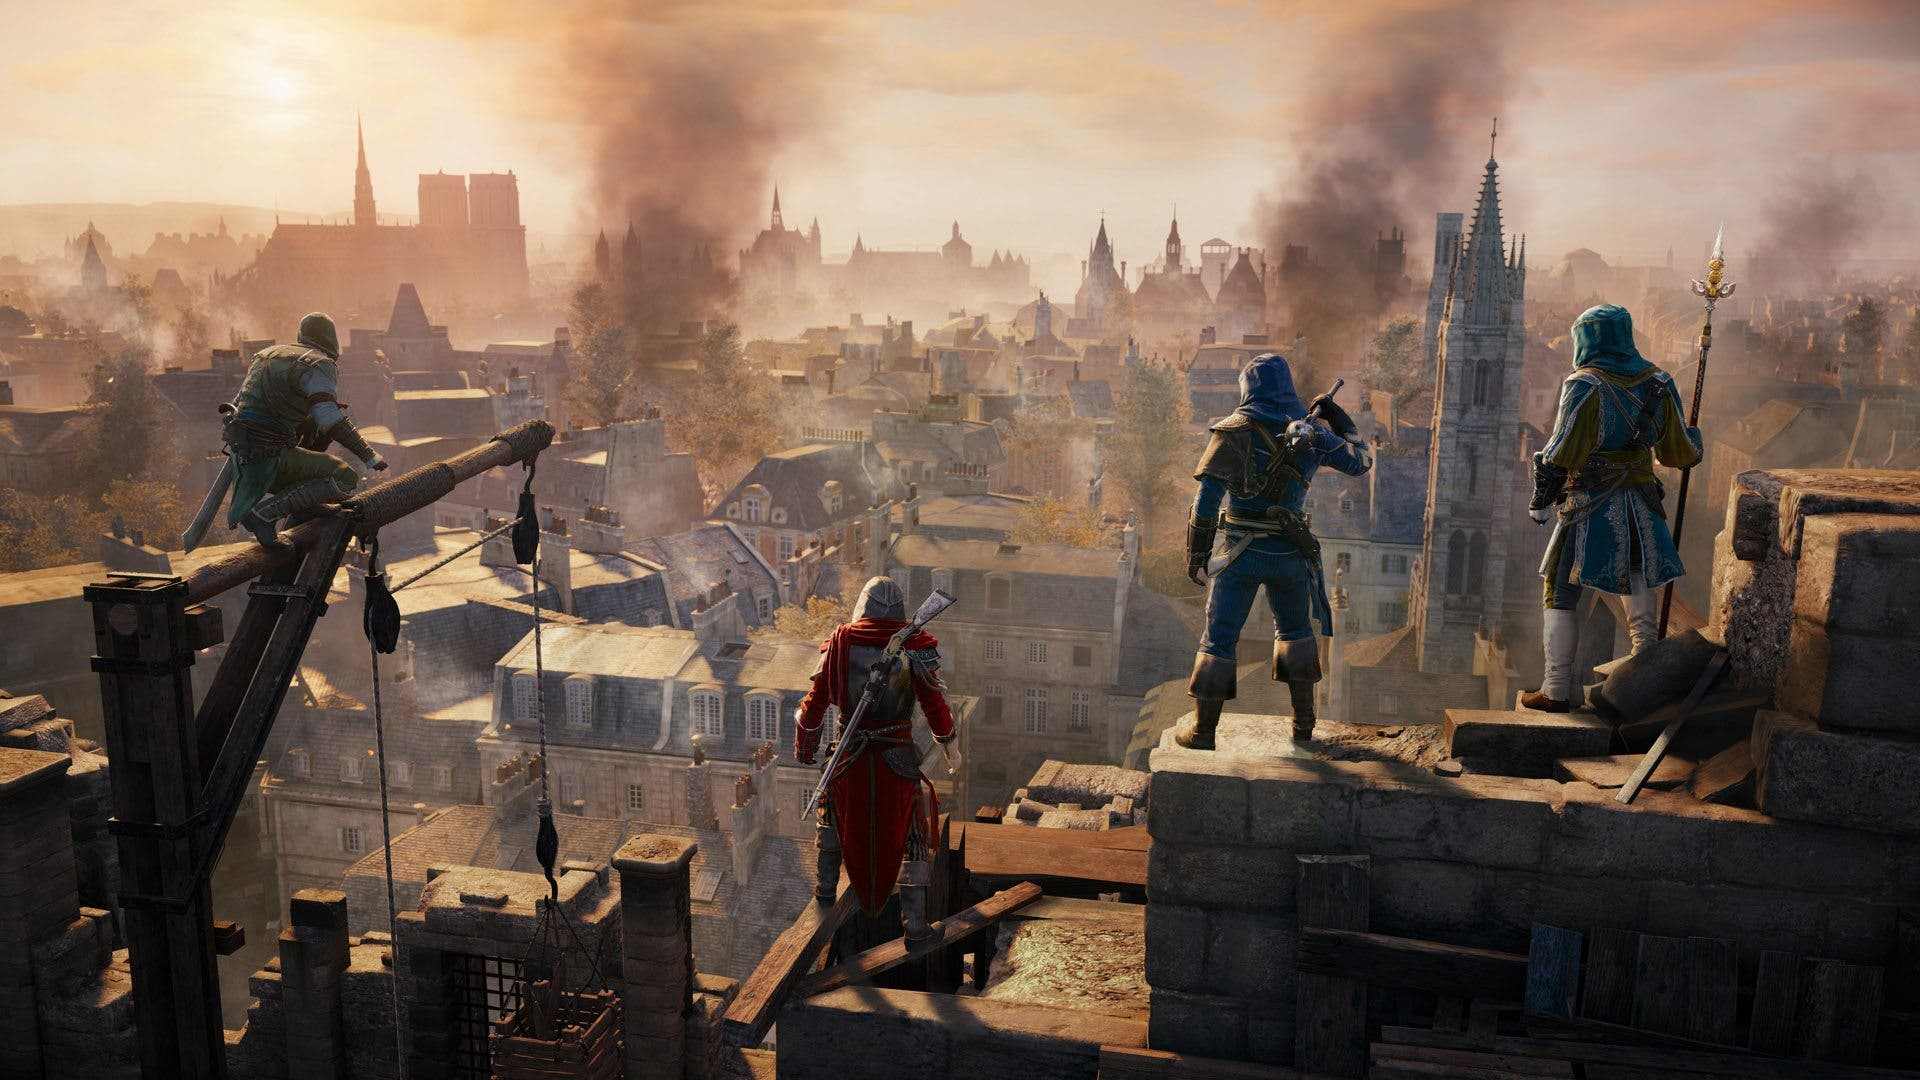 nuevo Assassin's Creed free to play